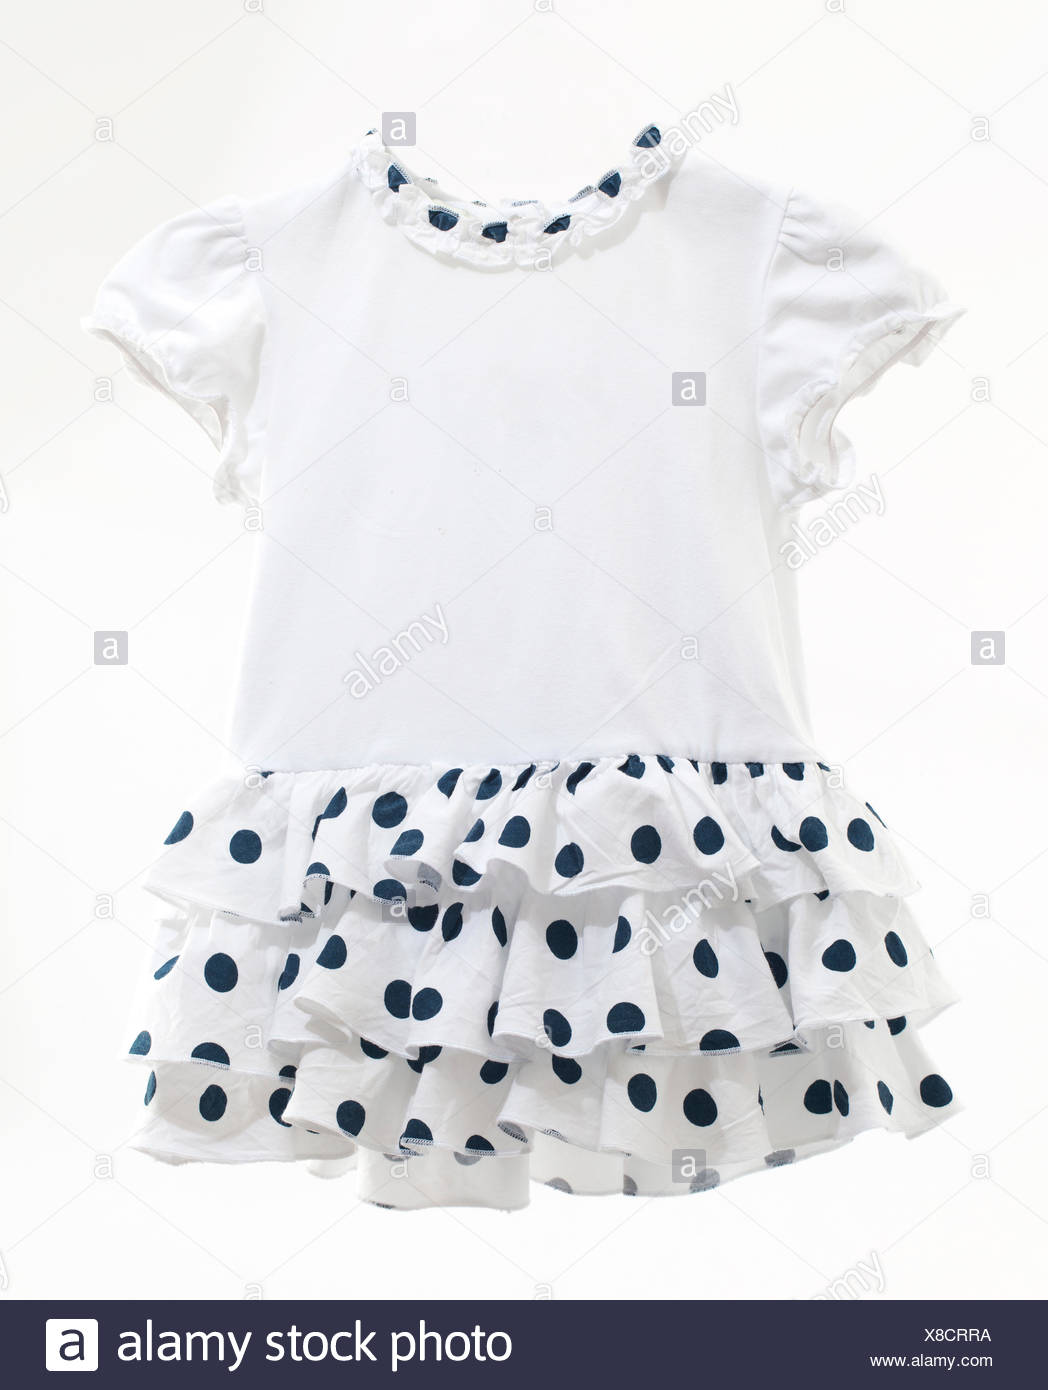 isolated, baby, clothes, cotton, fabric, dress, newborn child ...